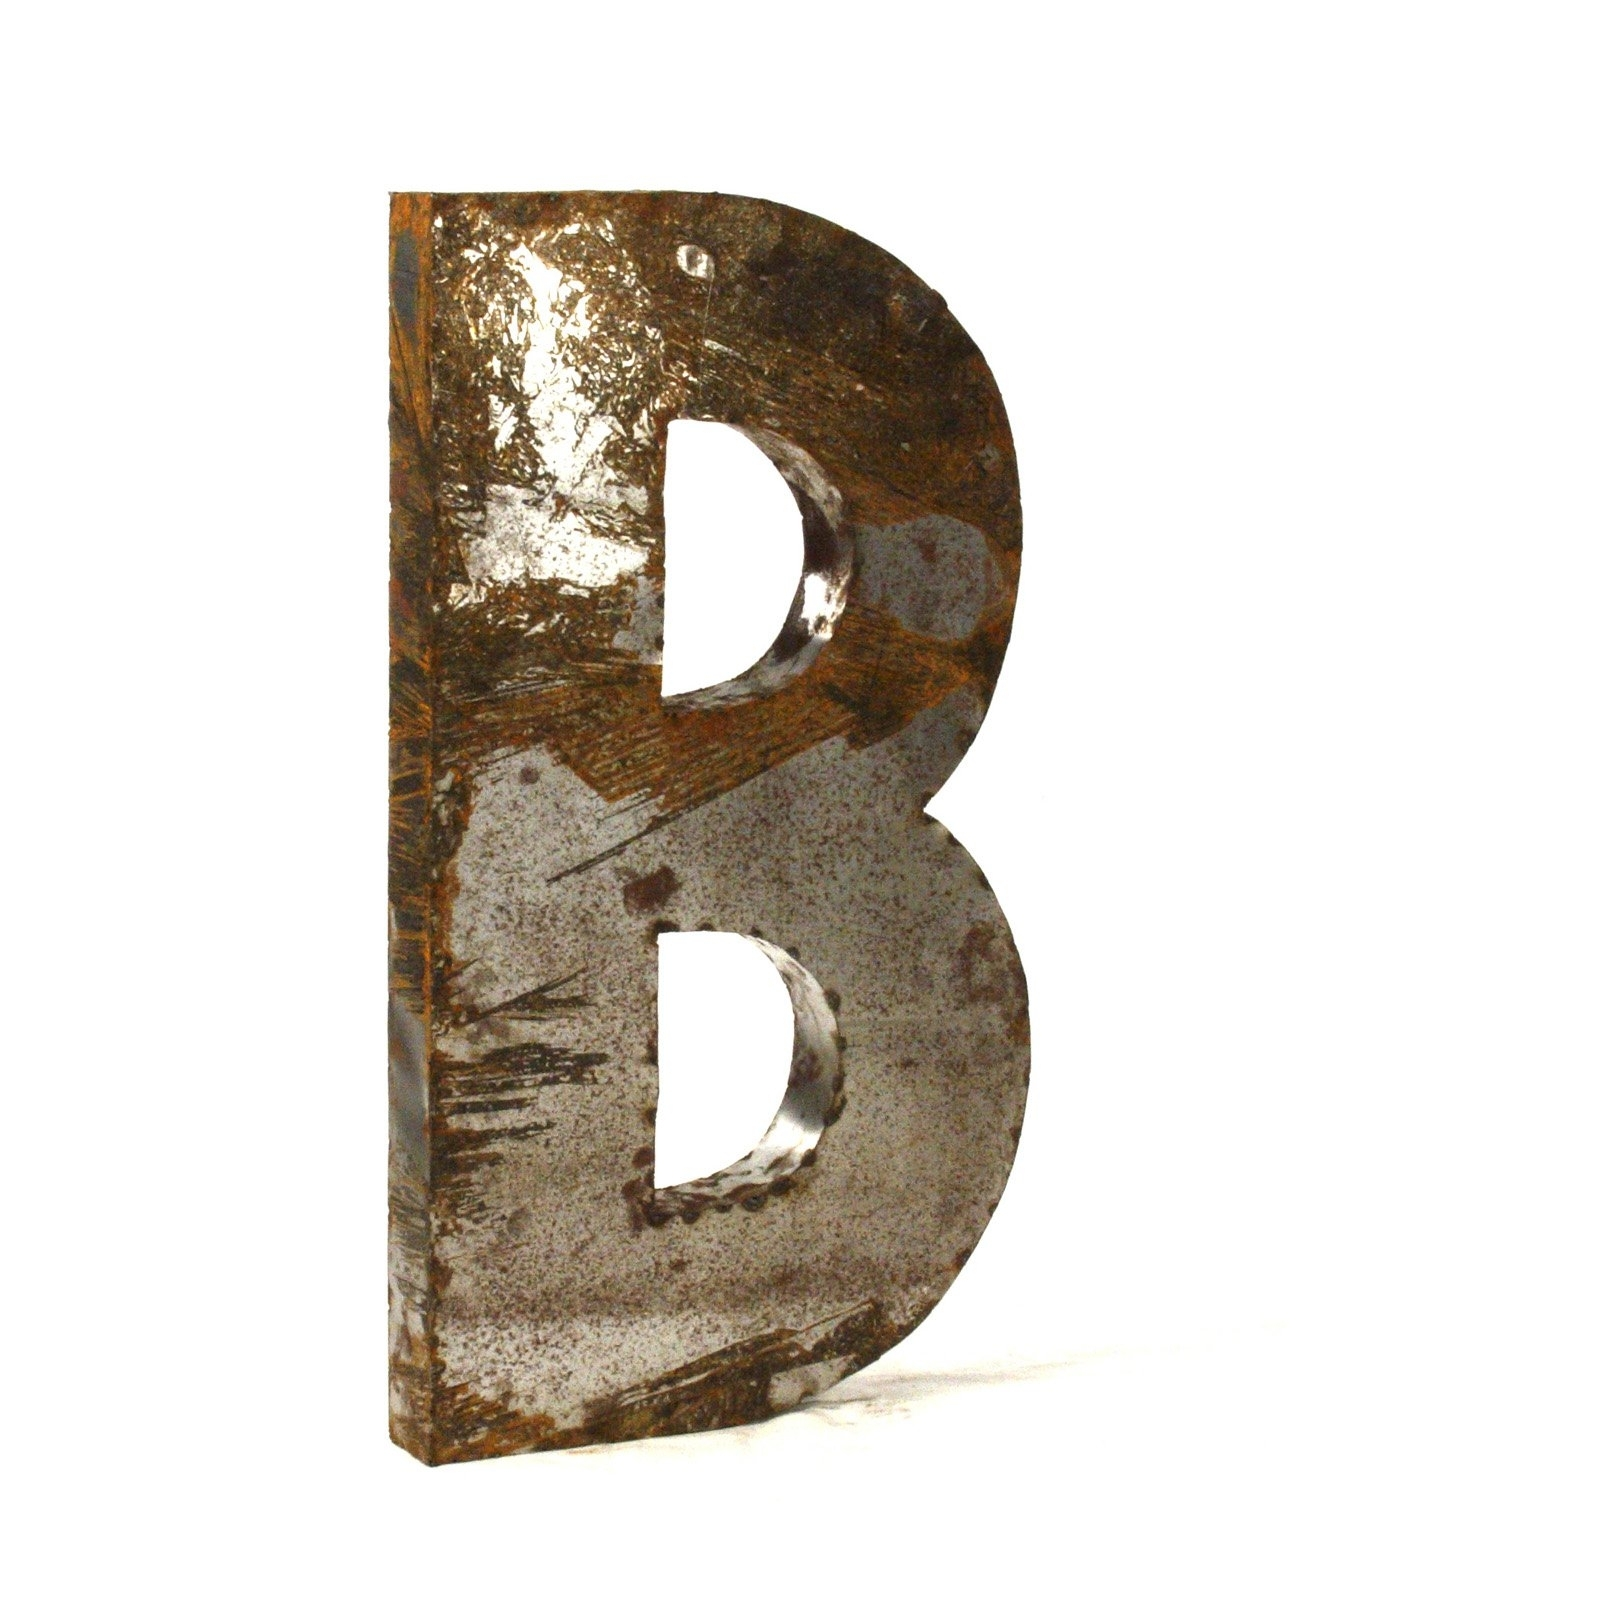 Girls Lacrosse Metal Wall Art Panel Single Letter Monogram With For Best And Newest Metal Letter Wall Art (View 7 of 20)